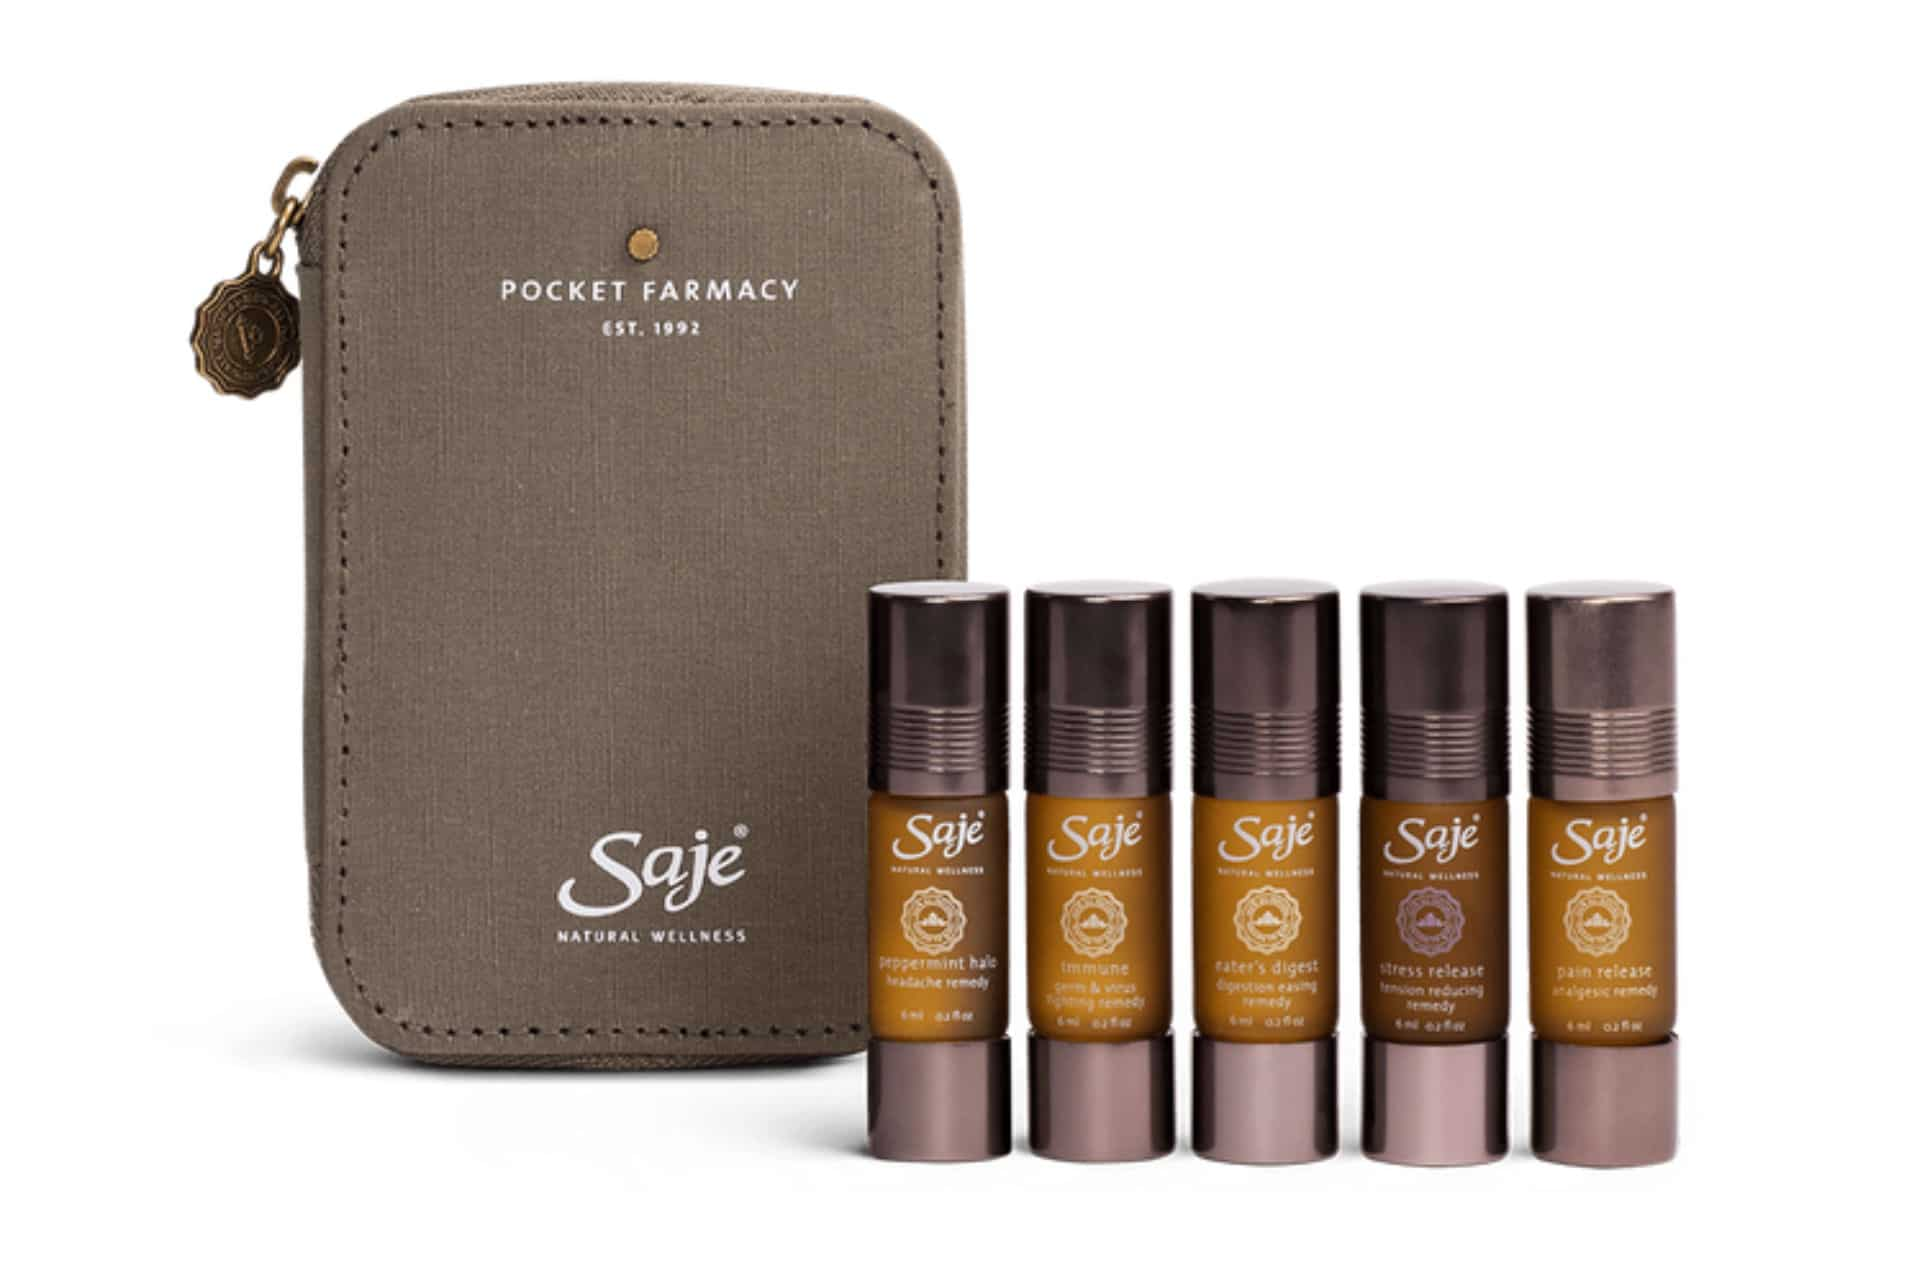 package of saje essential oils